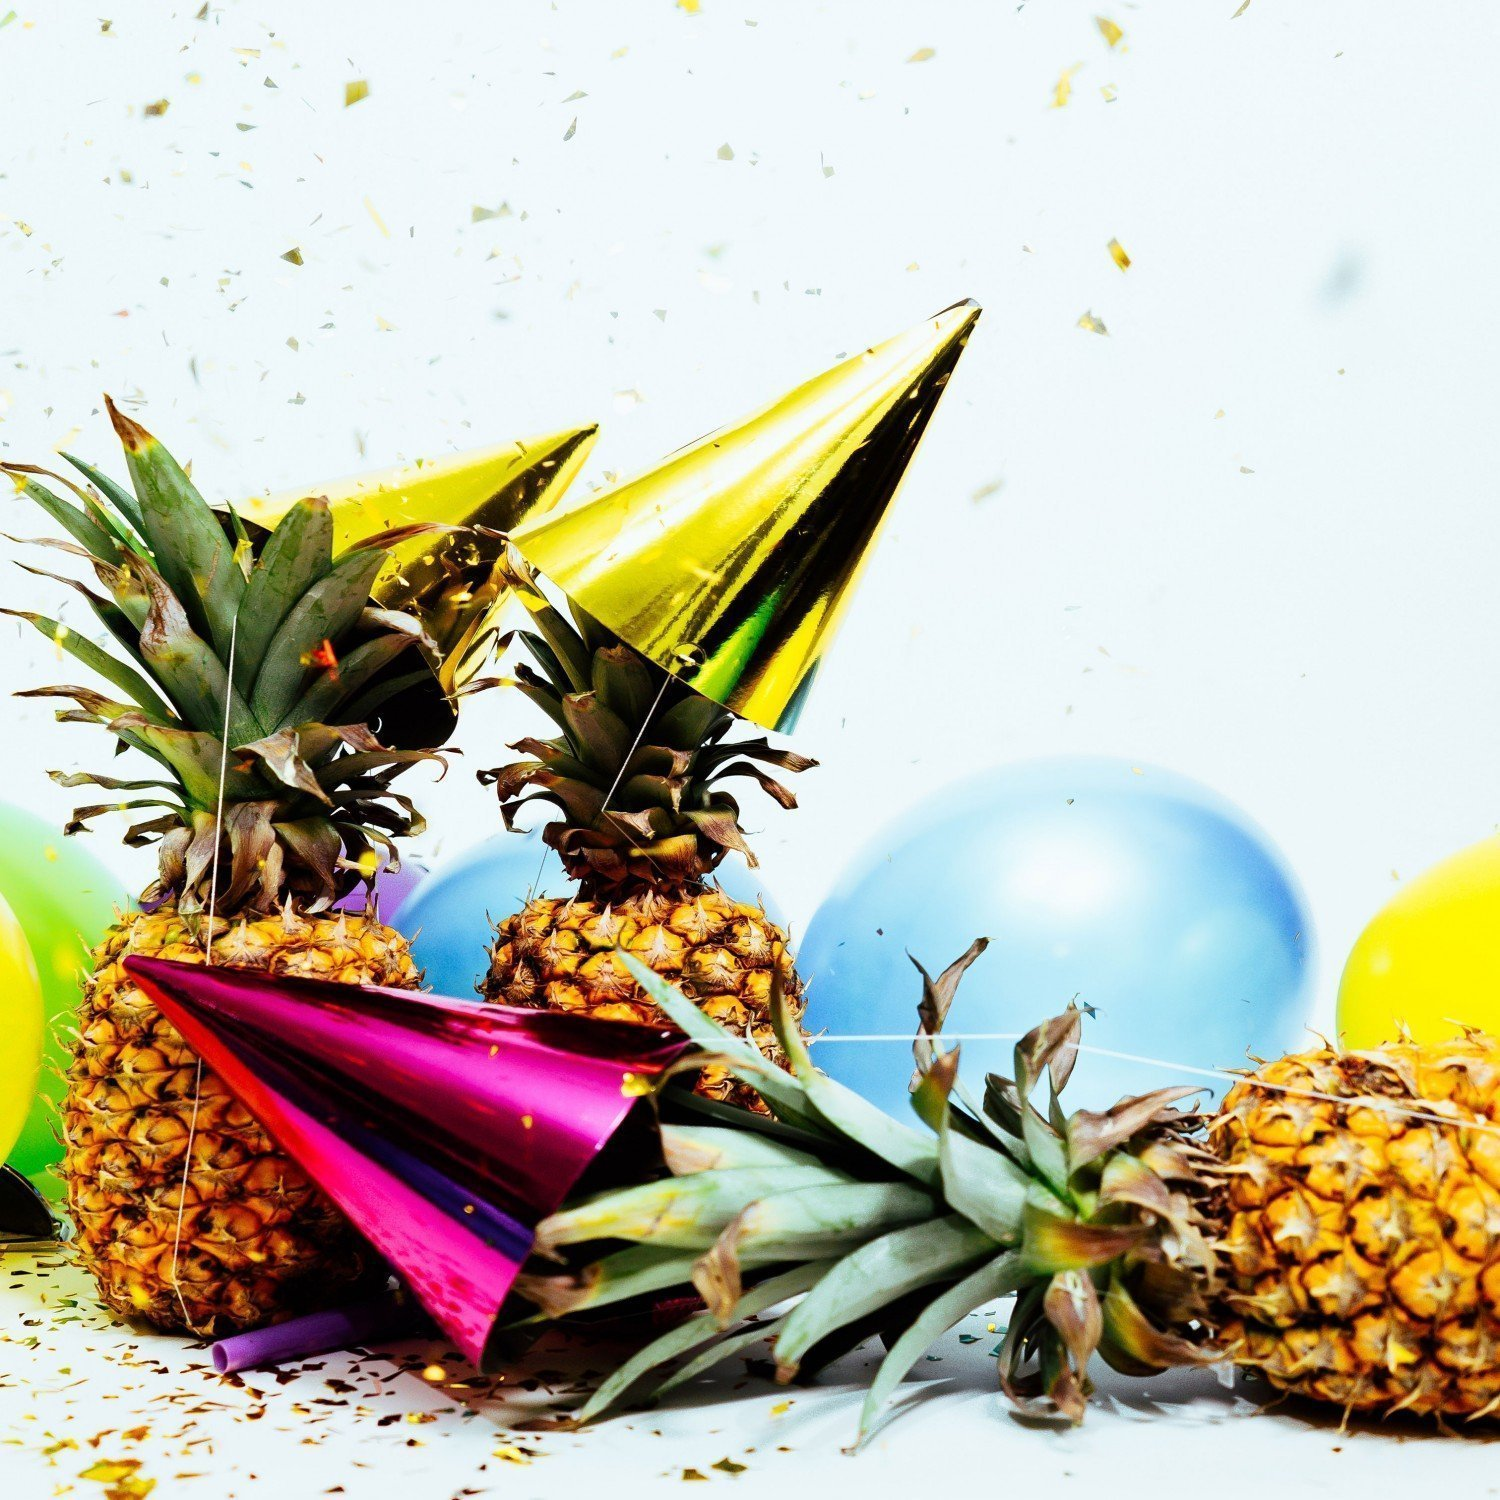 fallen pineapple at a crowded party